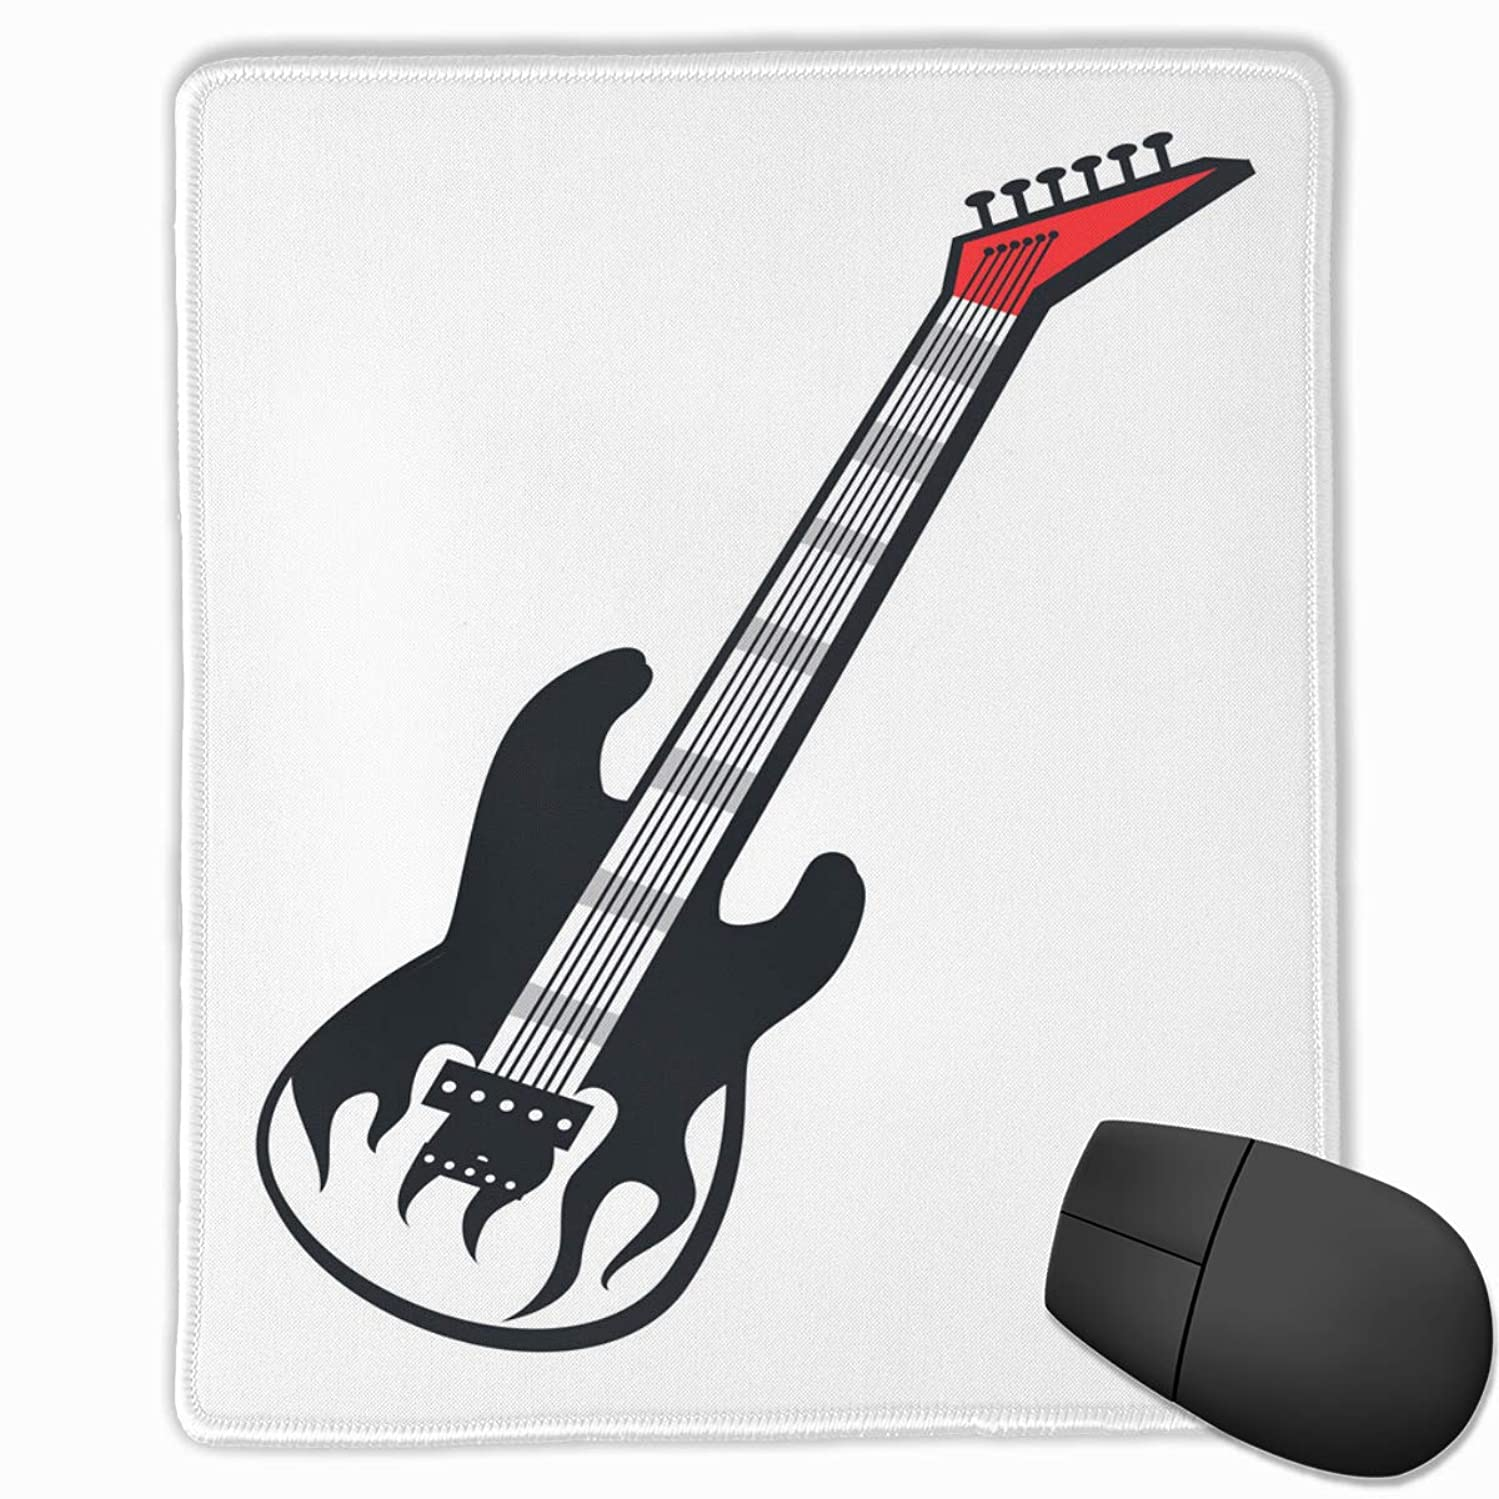 Padida Mouse Pad Electric Guitar White Flame Tongue Mousepad Non-Slip Rubber Gaming Mouse Pad Rectangle Mouse Pads for Computers Laptop